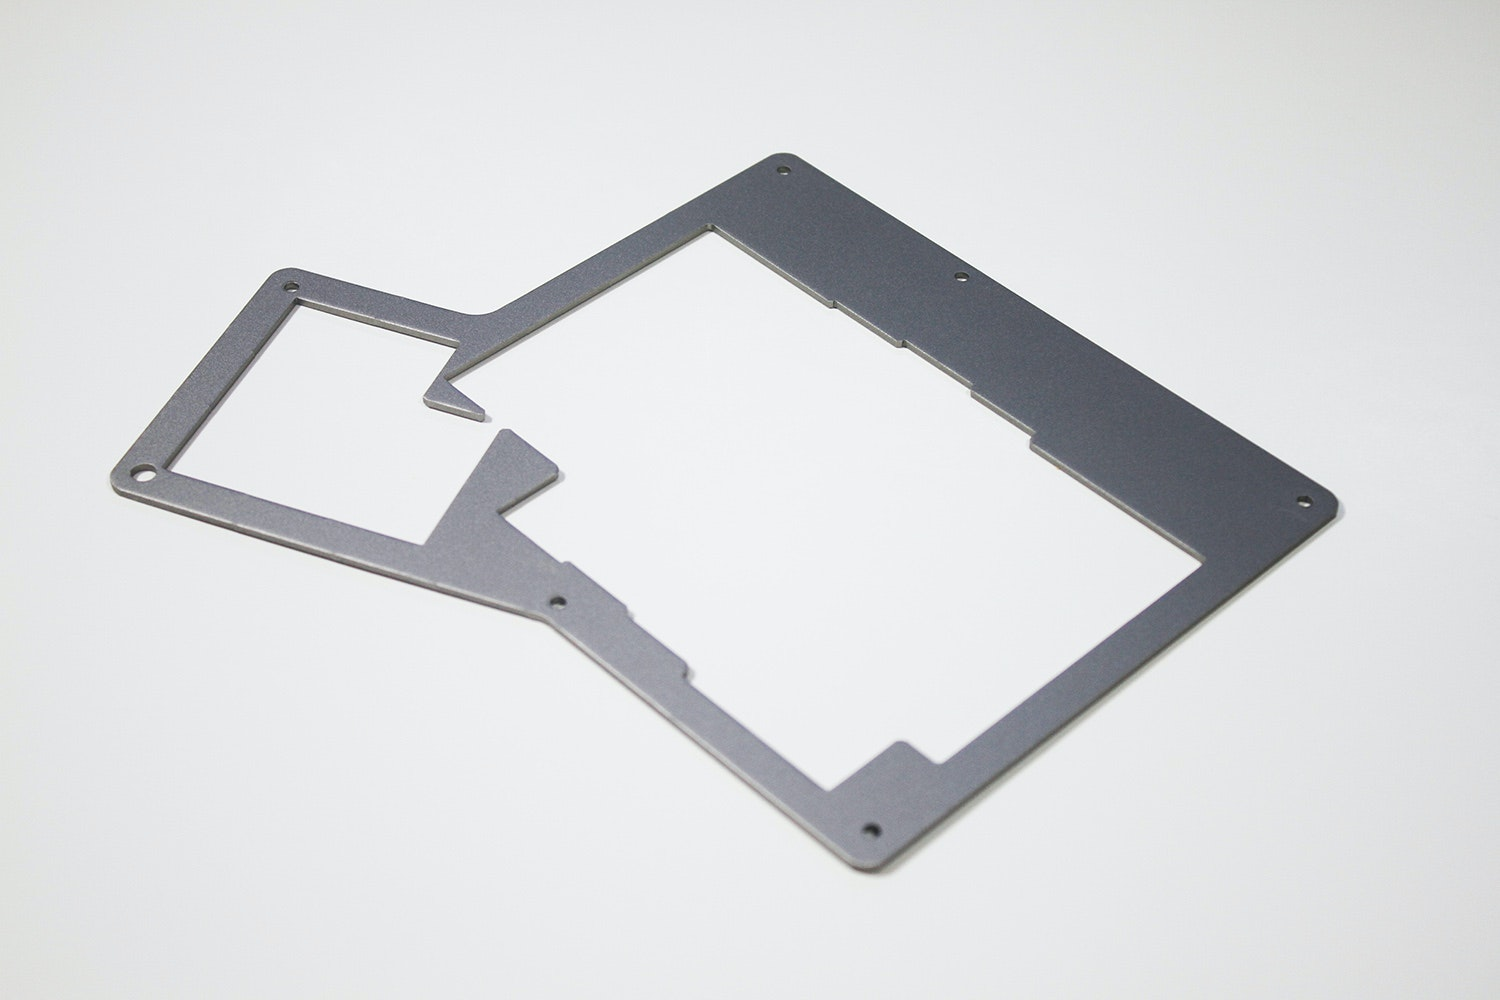 ErgoDox Aluminum Top Sheet Set (Two Pieces)